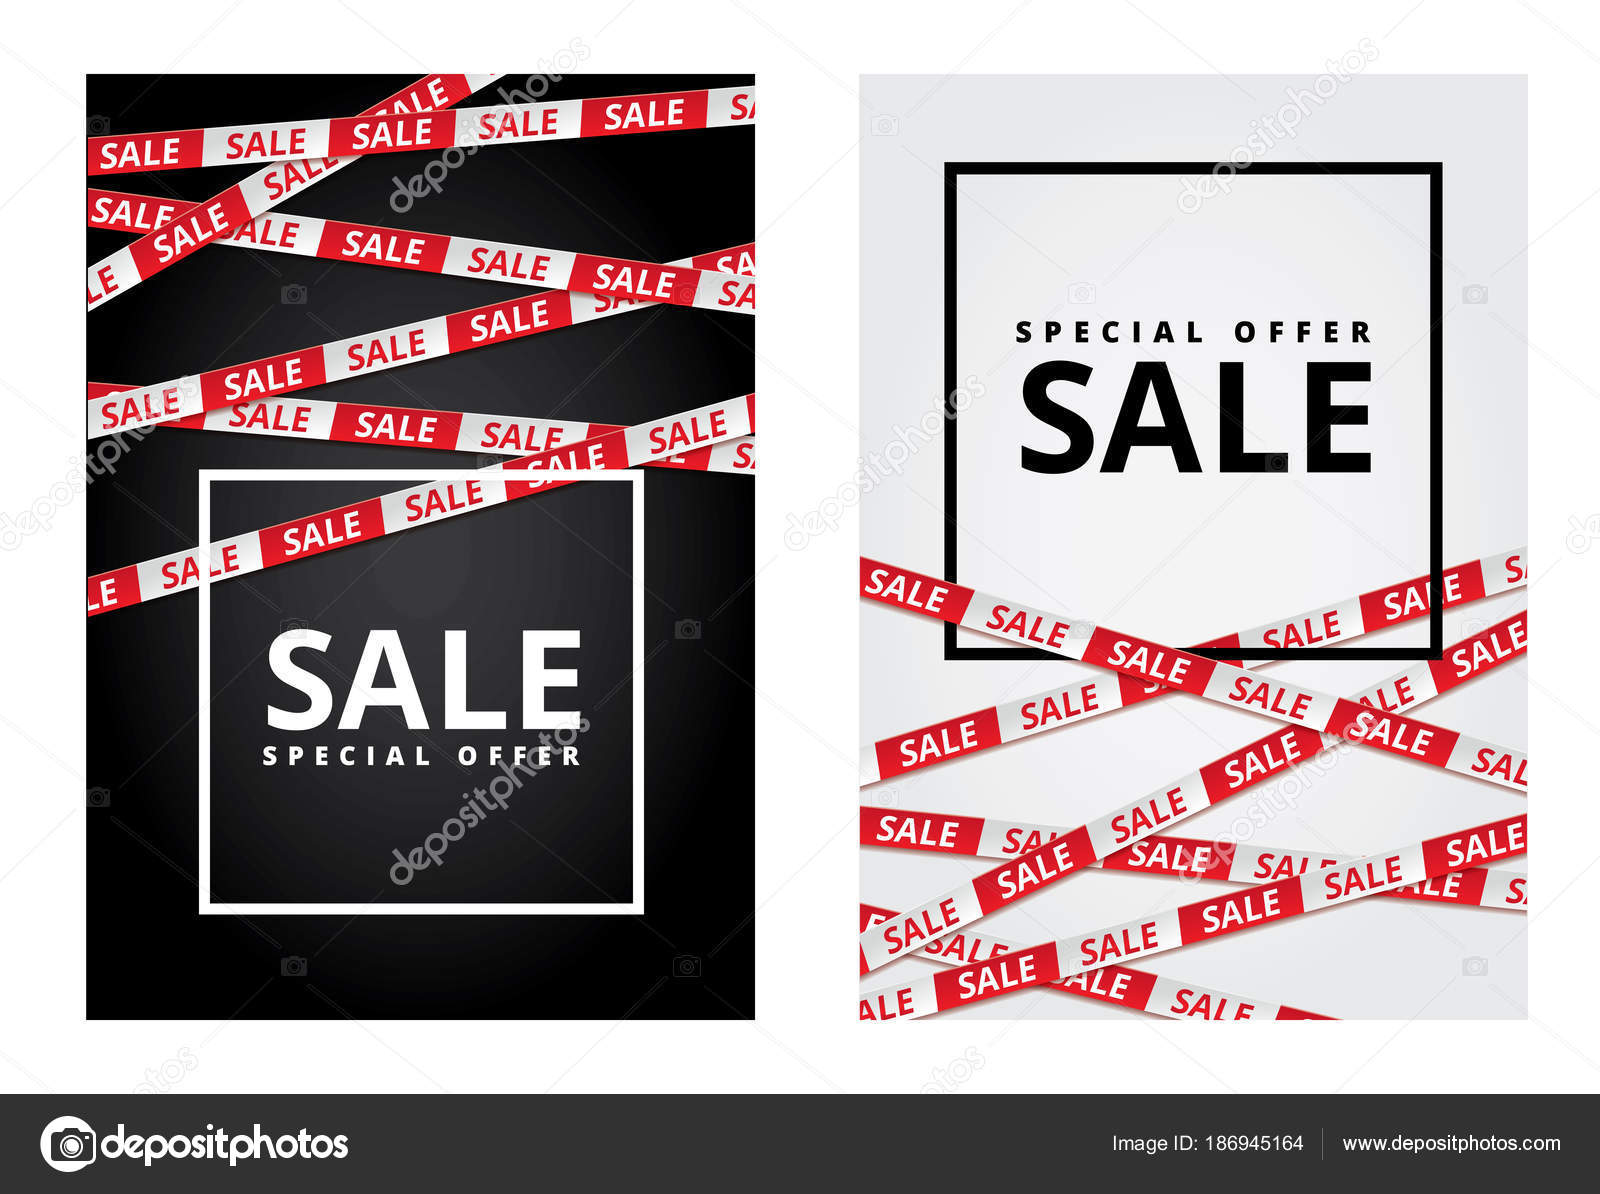 Black friday sale tape ribbon card stock vector pirinairina black friday sale tape ribbon card background special offer tape poster low price banner discount flyer holiday percentage wallpaper shopping template reheart Image collections